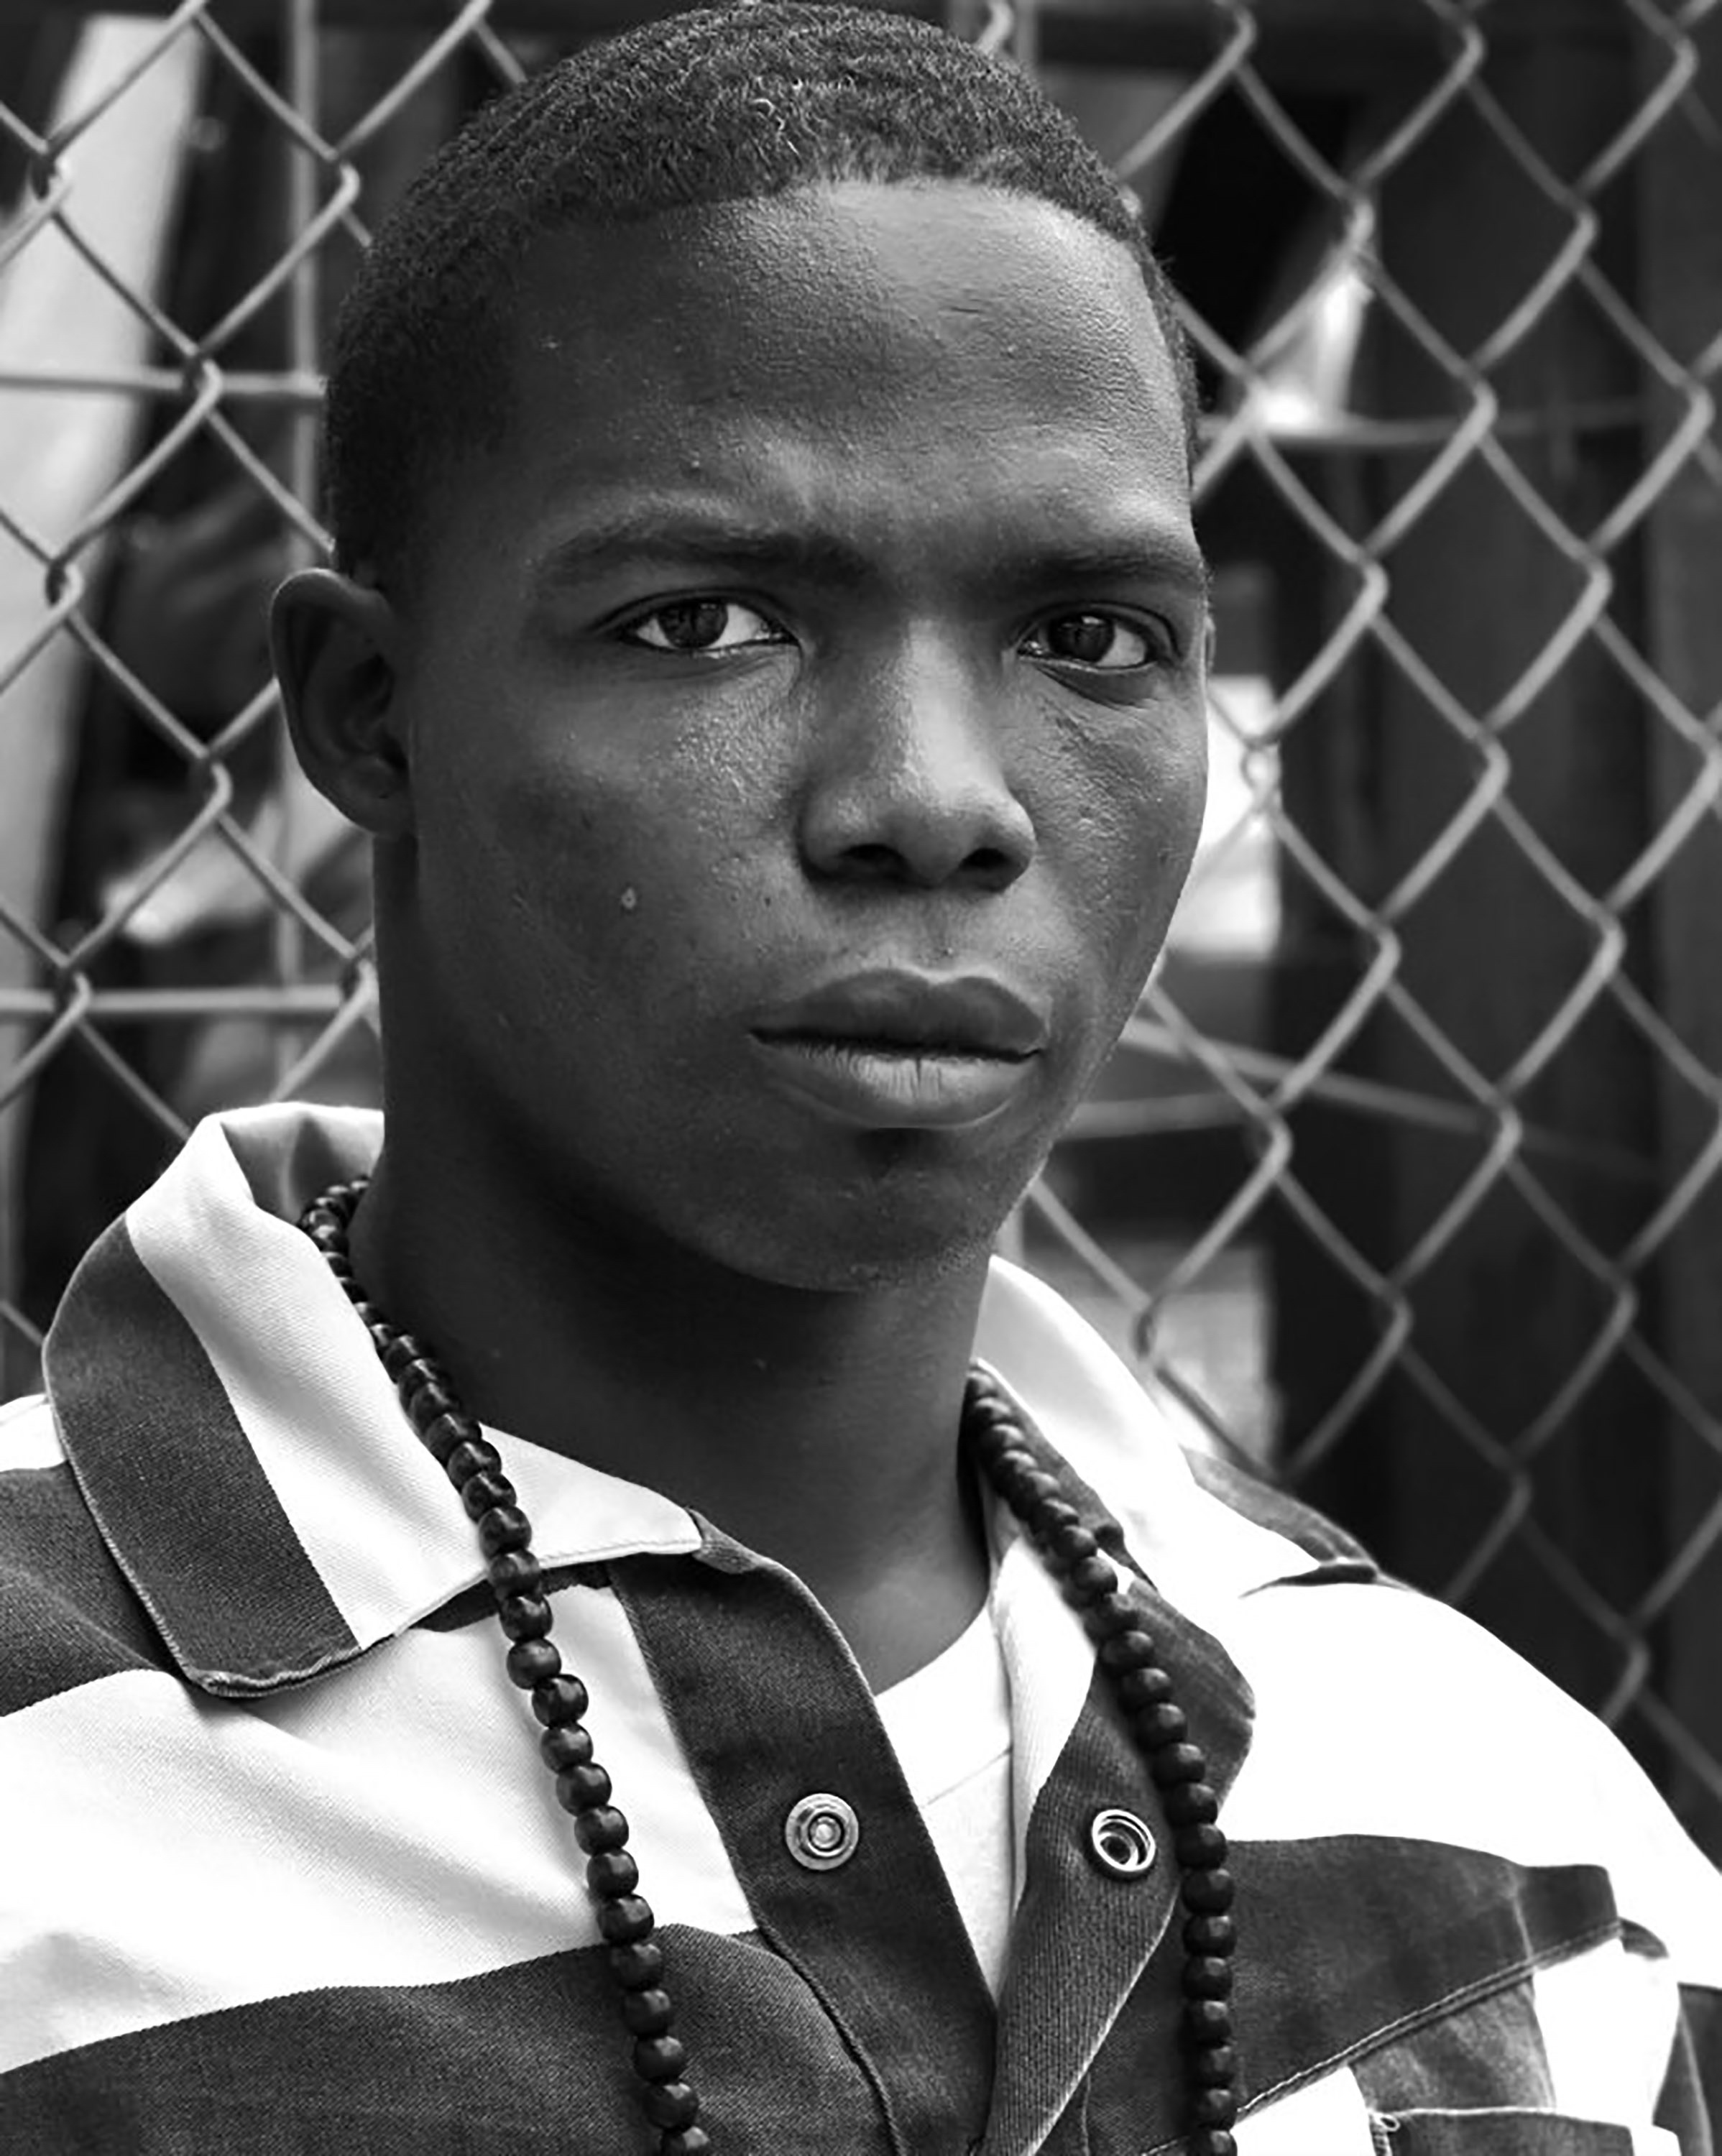 Chandra McCormick. YOUNG MAN, ANGOLA STATE PENITENTIARY, 2013.